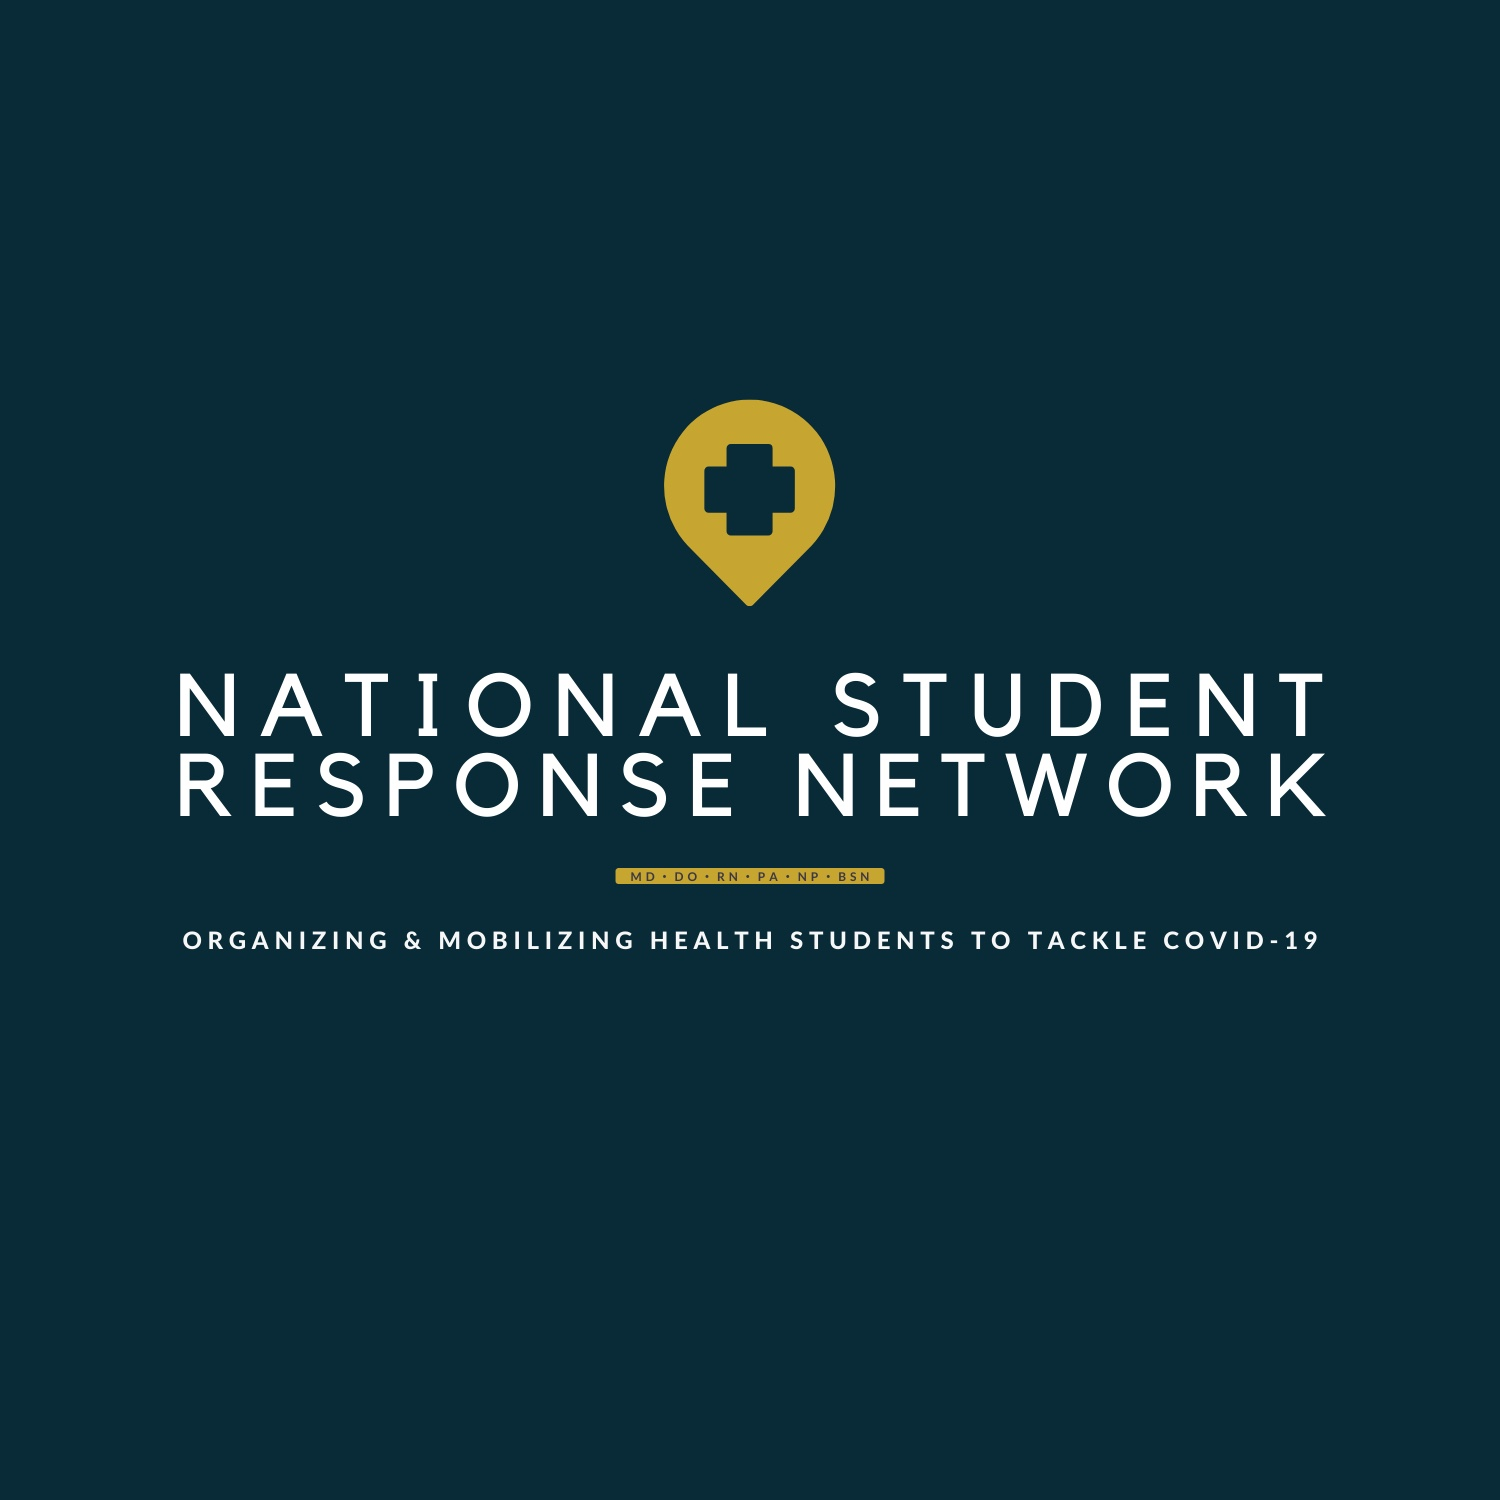 National Student Response Network (NSRN)